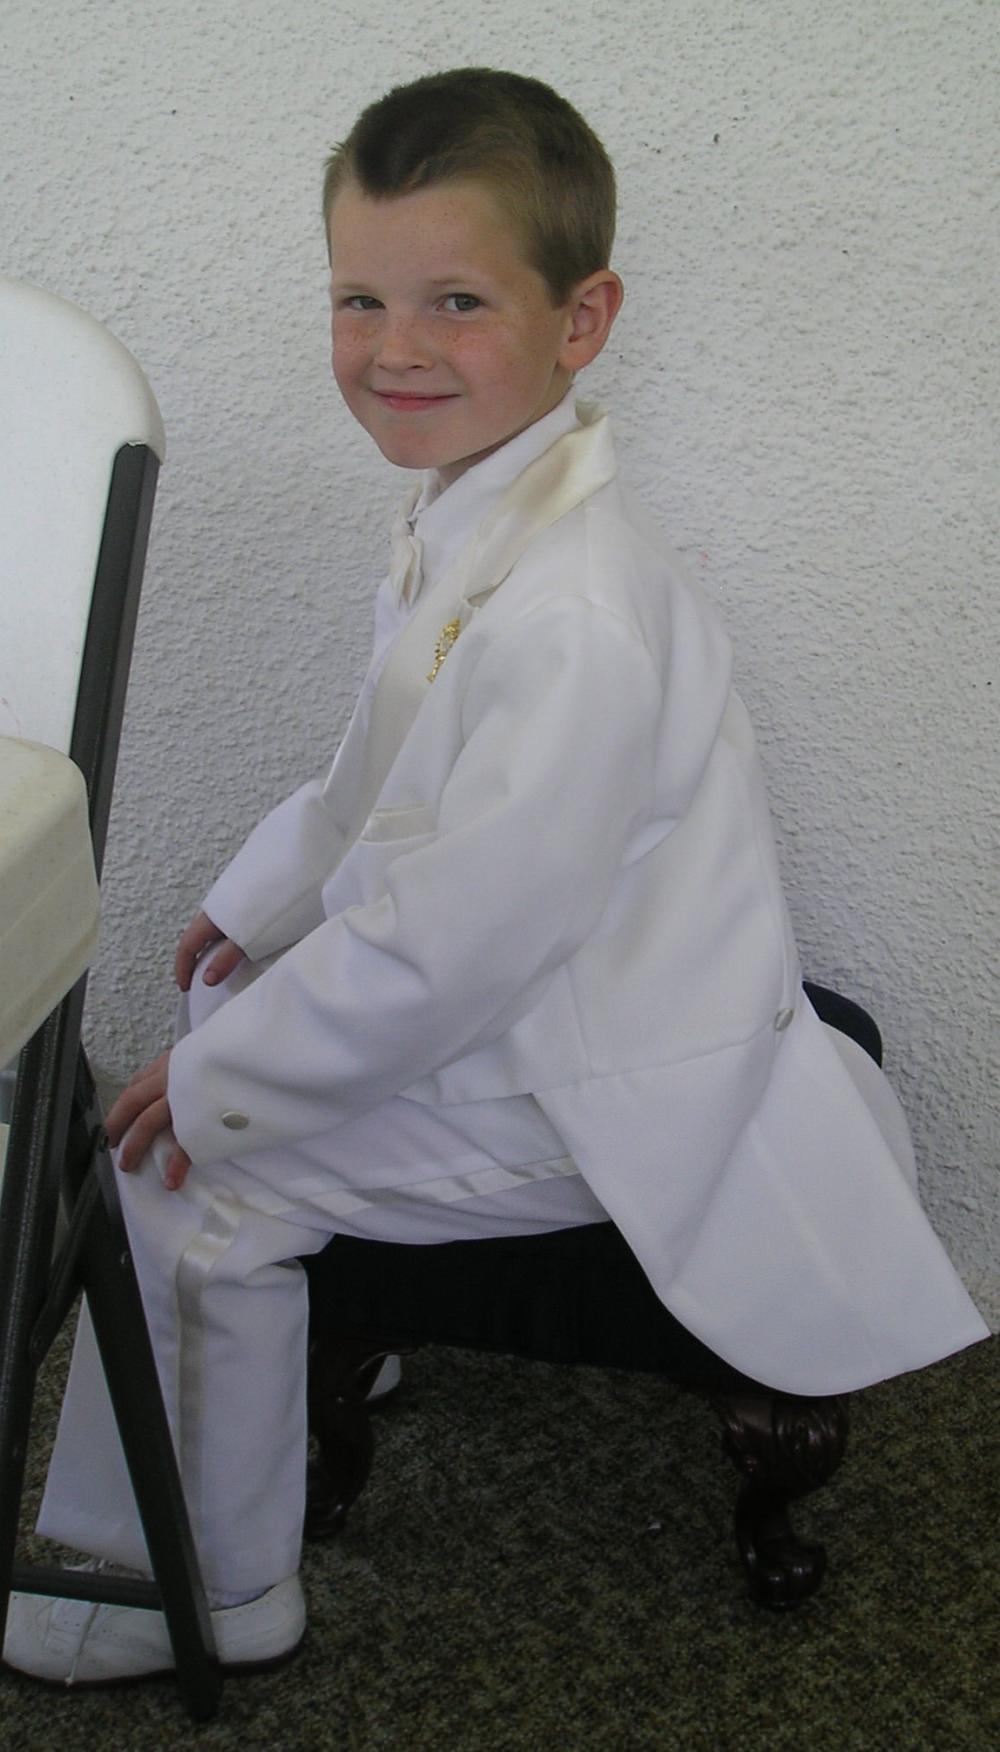 First Communion Suits: Tux with bow tie and white shoes.